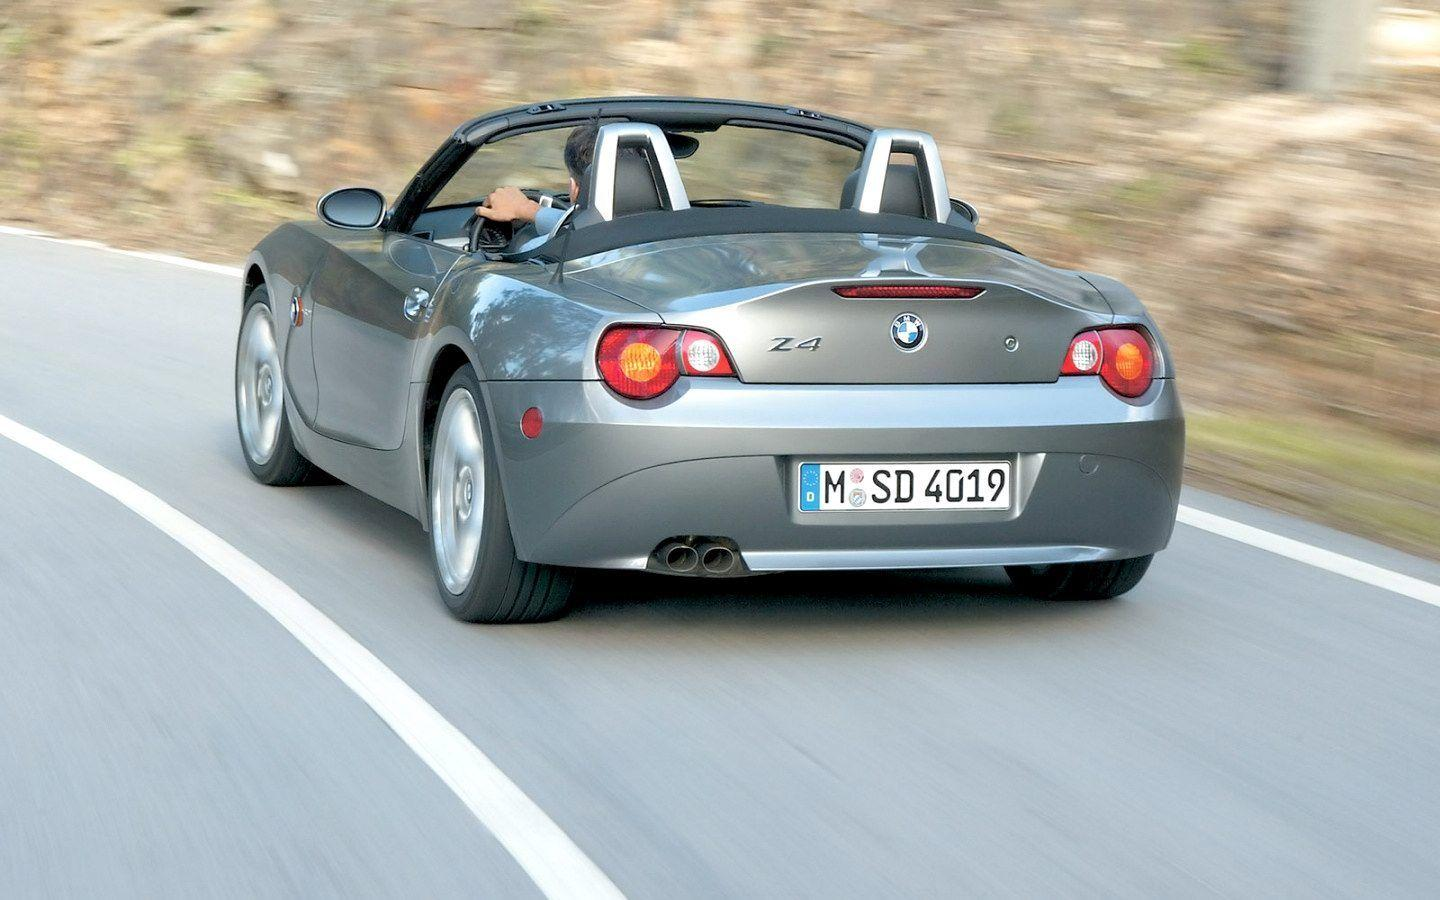 BMW Z4 Roadster Wallpaper 06 - 1440x900